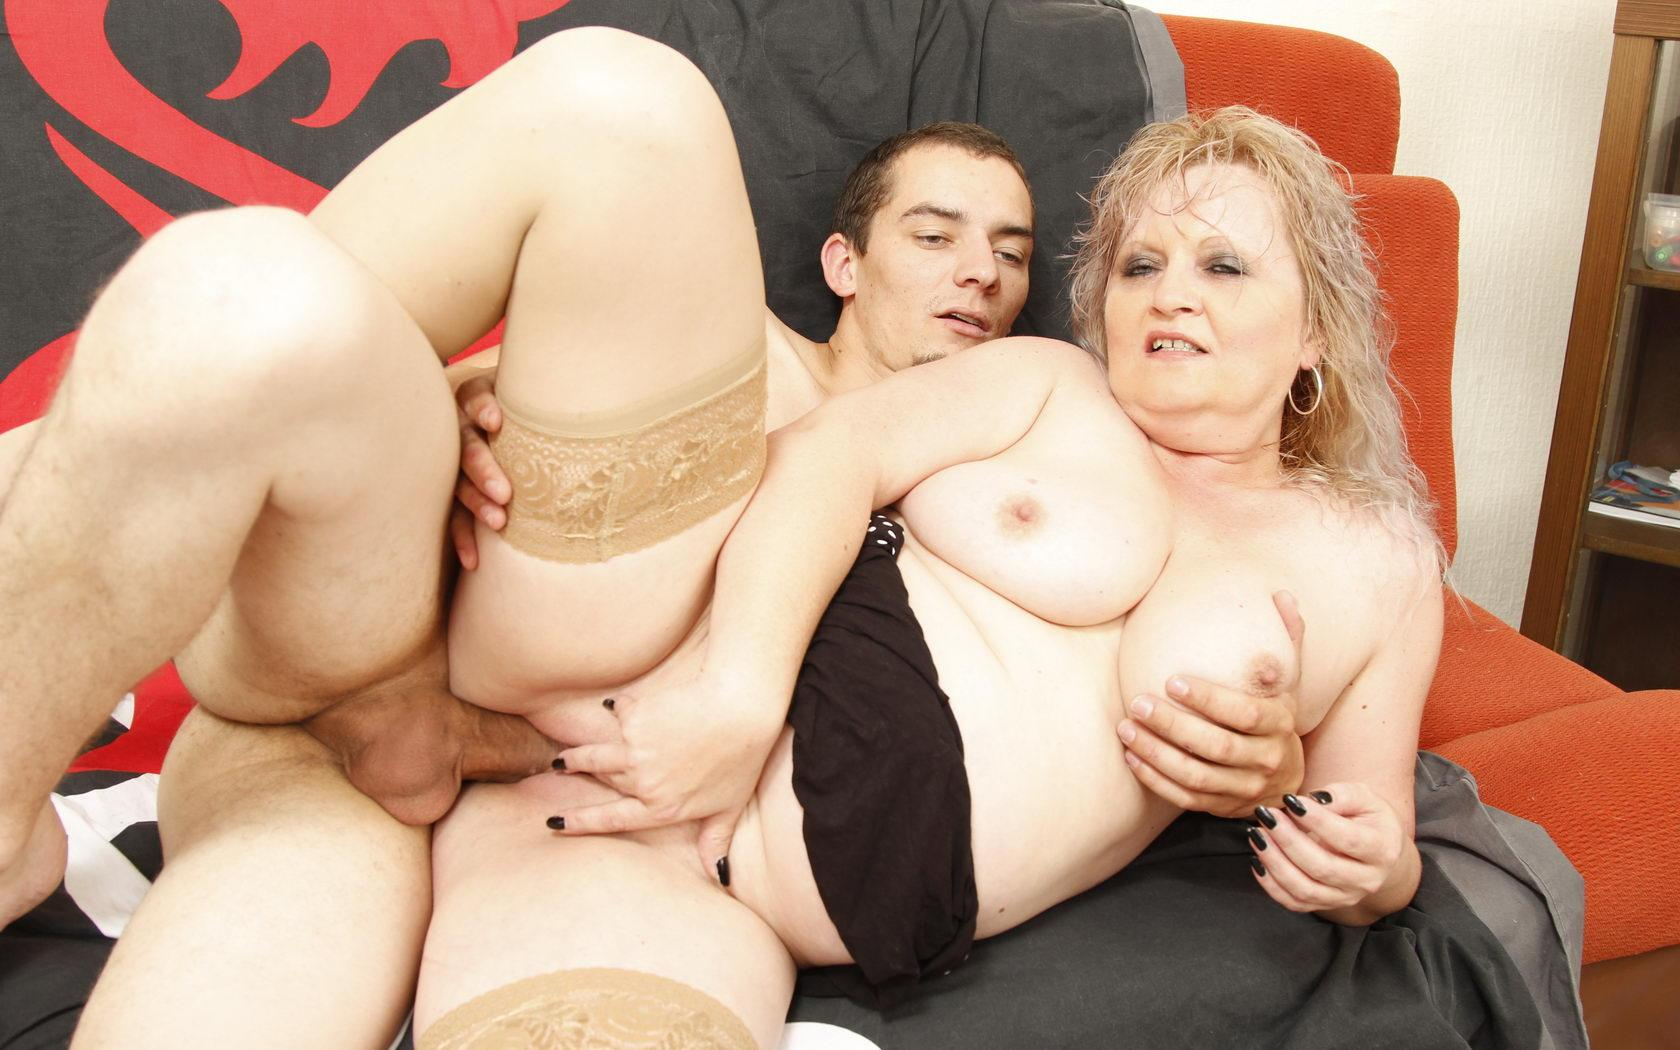 Kari a beautyful granny sucking a guy that is 40 years younger then she is